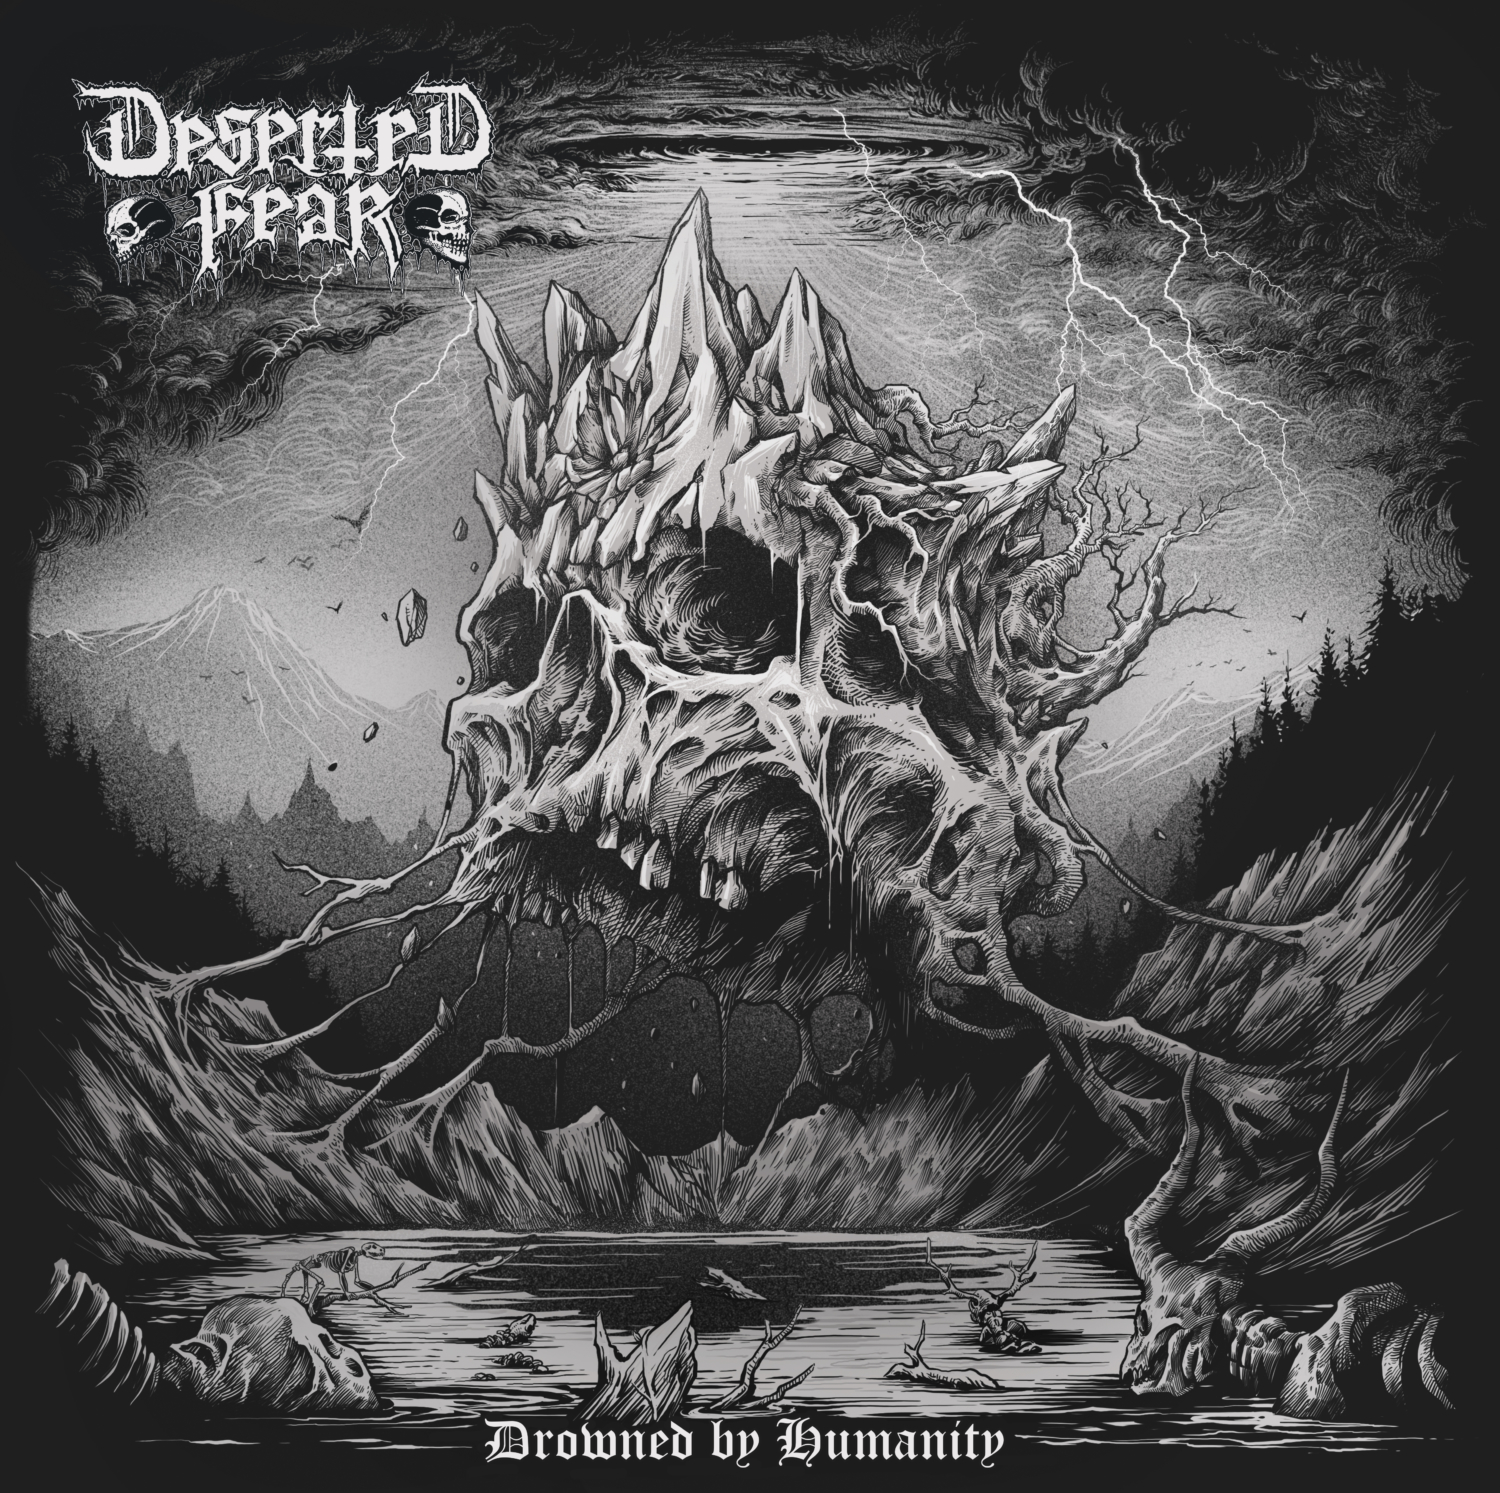 deserted_fear_drowned_by_humanity_cover-hoher-fur-ole-1500x1493.jpg